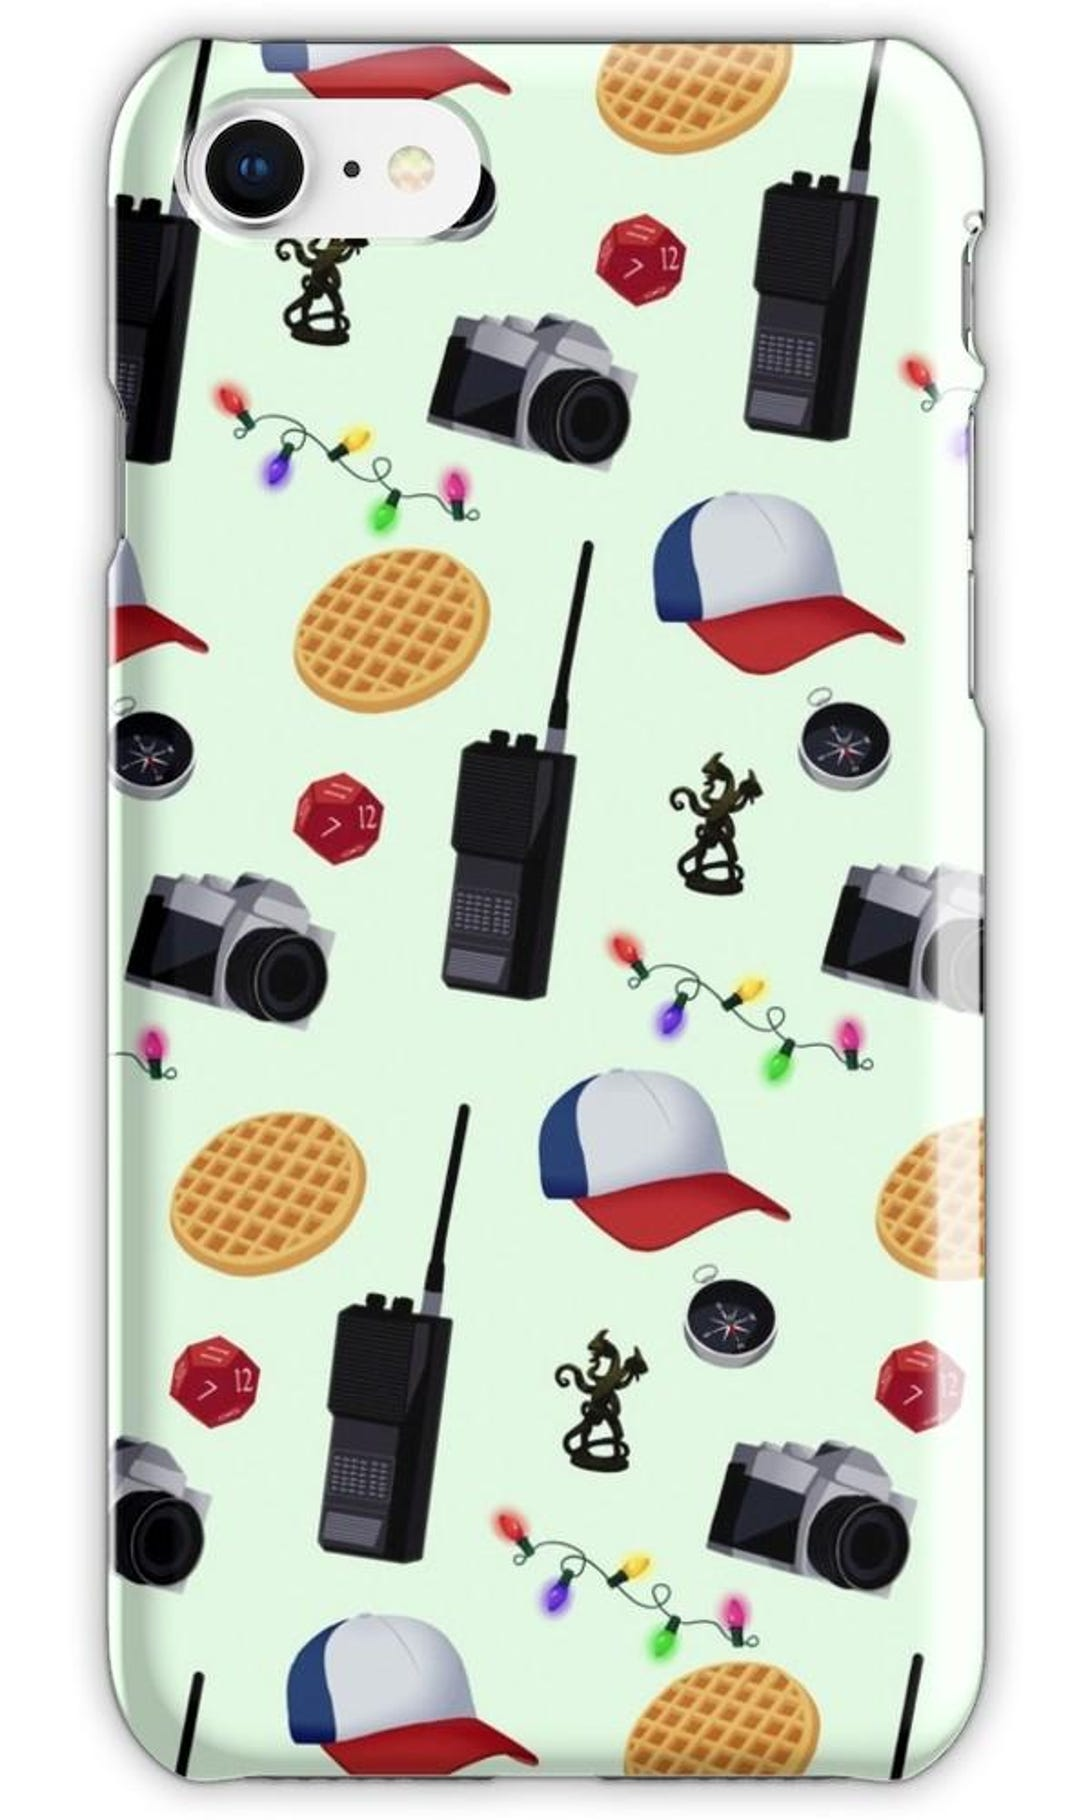 iphonecase-redbubble-1